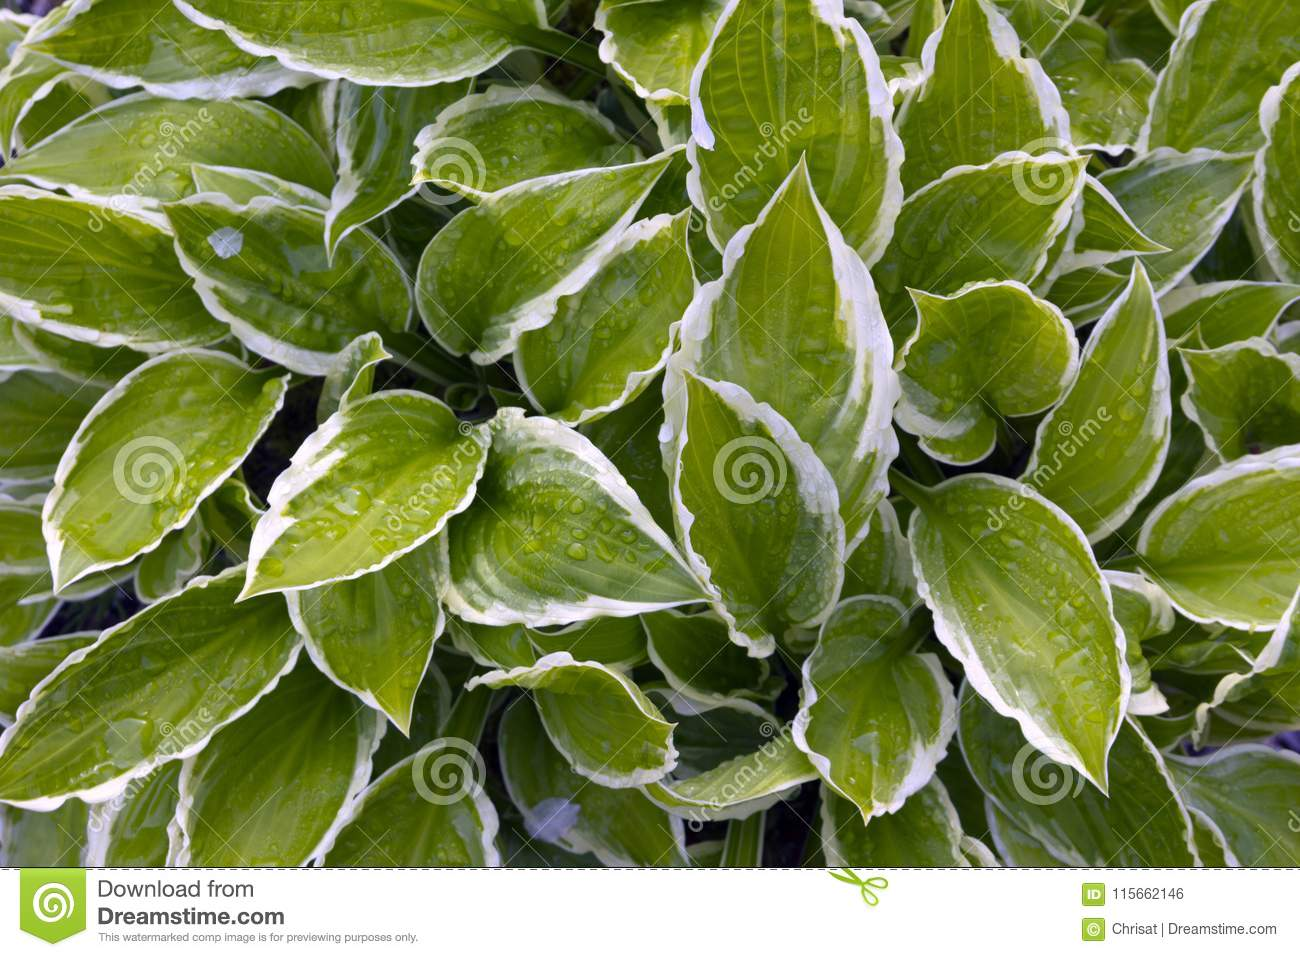 Hostas Stock Photo Image Of Britain Photo Ribs Leaf 115662146